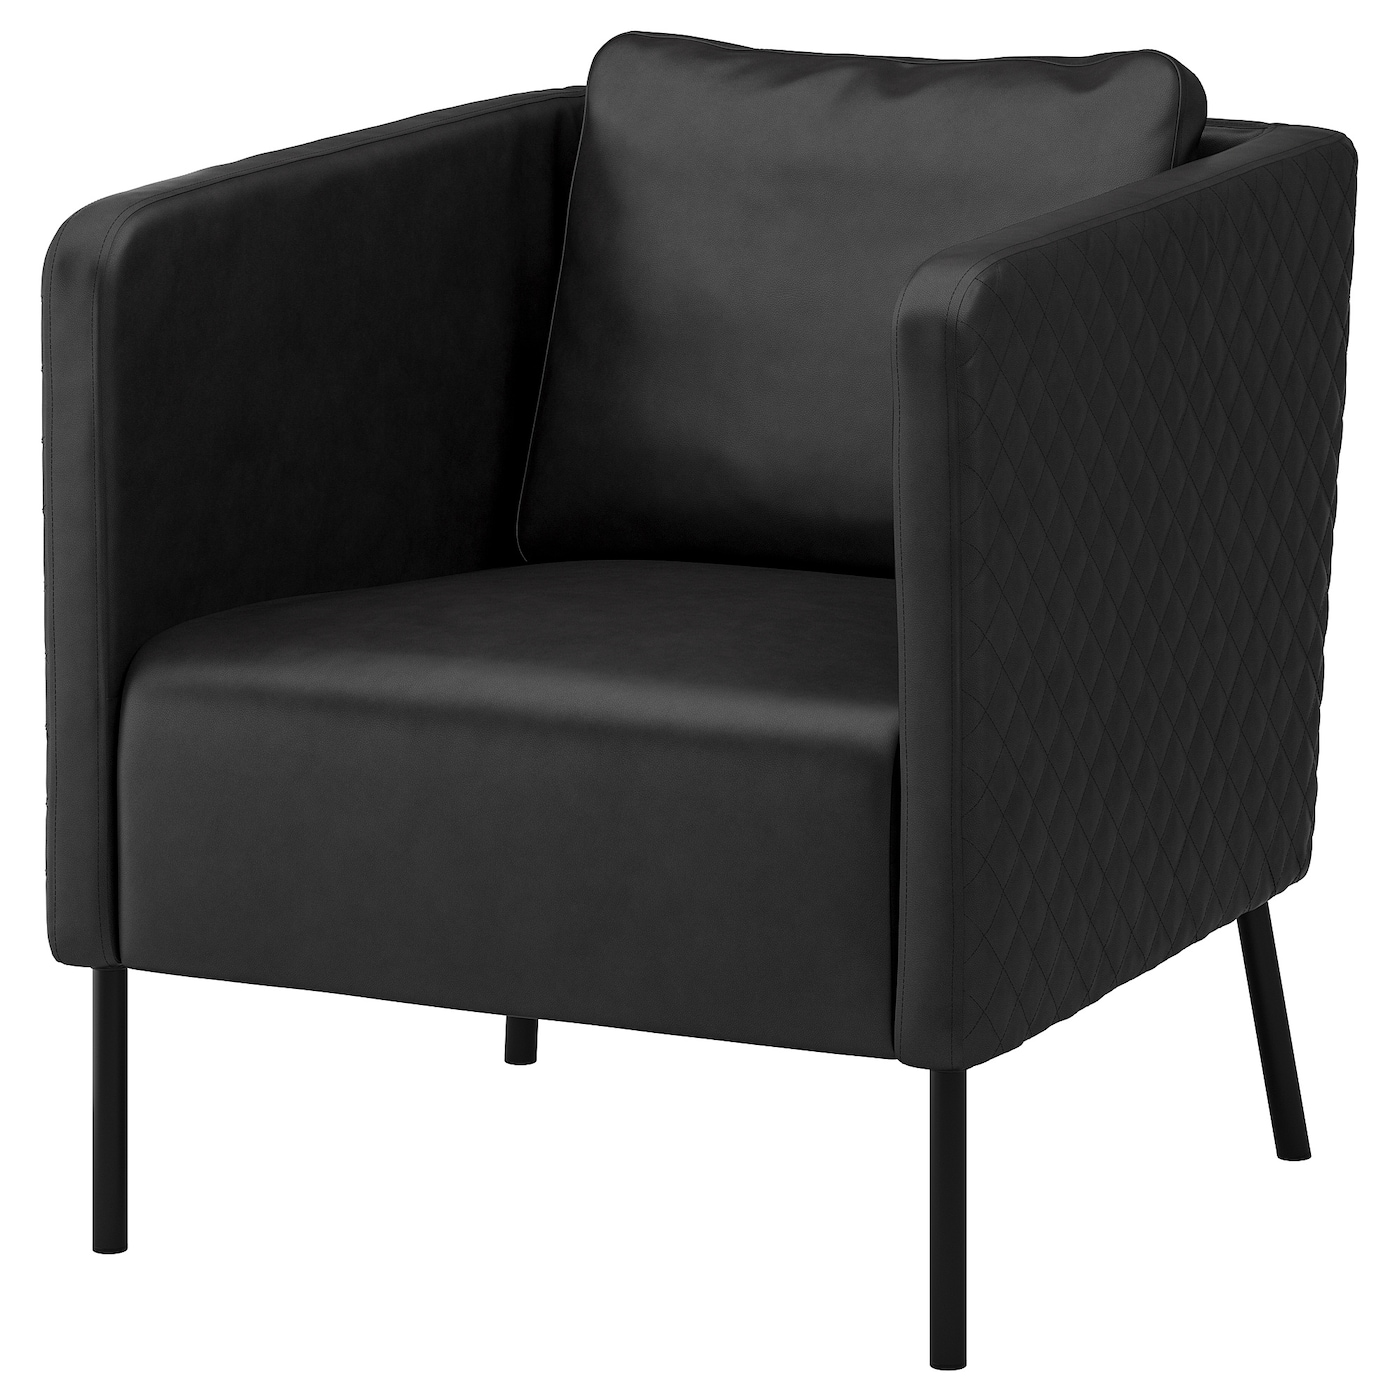 IKEA EKERÖ armchair The cover is easy to keep clean as it can be wiped clean with a damp cloth.